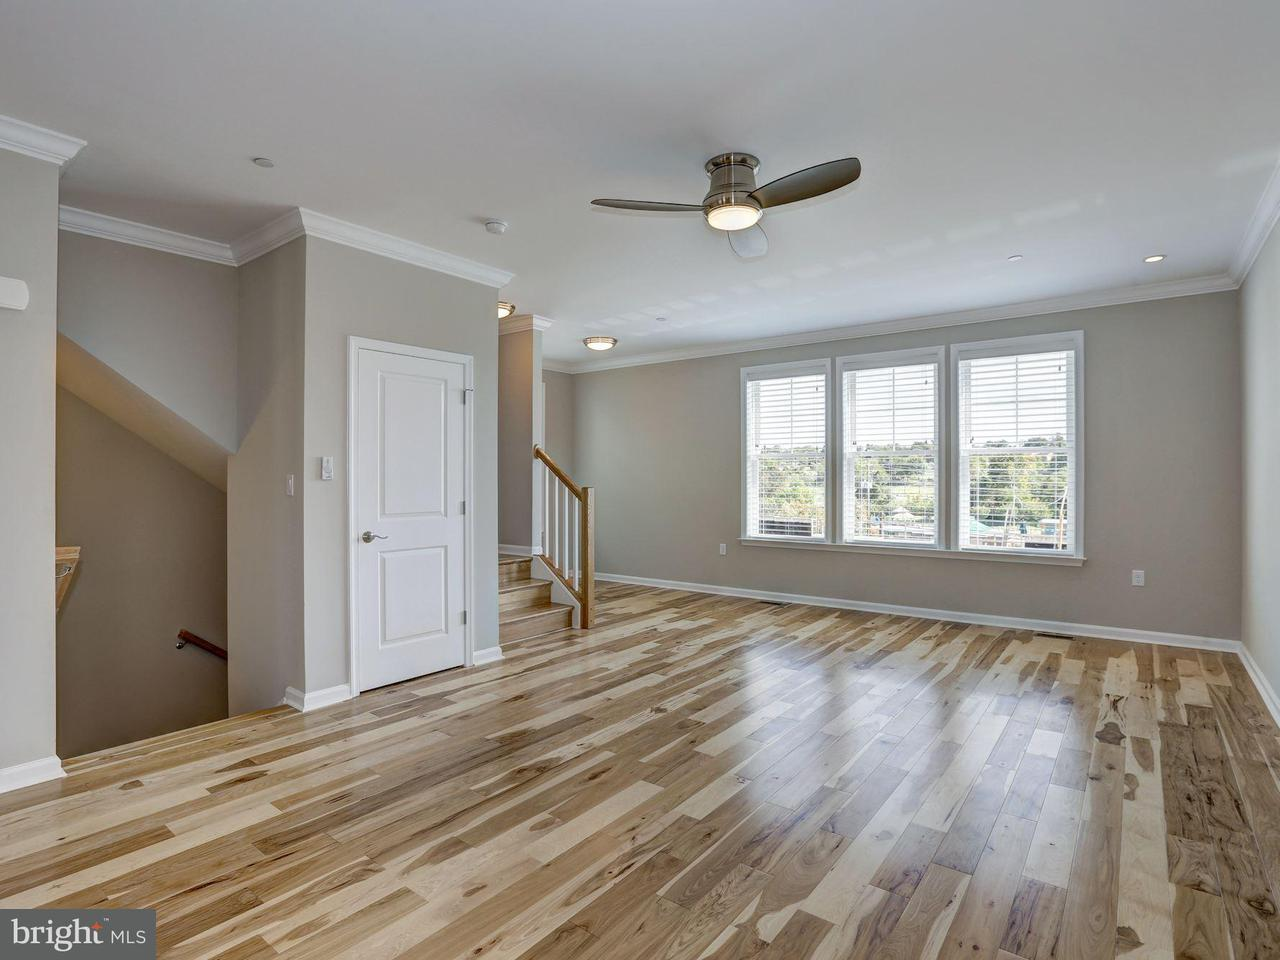 Additional photo for property listing at 437 WOODCREST DR SE 437 WOODCREST DR SE Washington, District Of Columbia 20032 United States